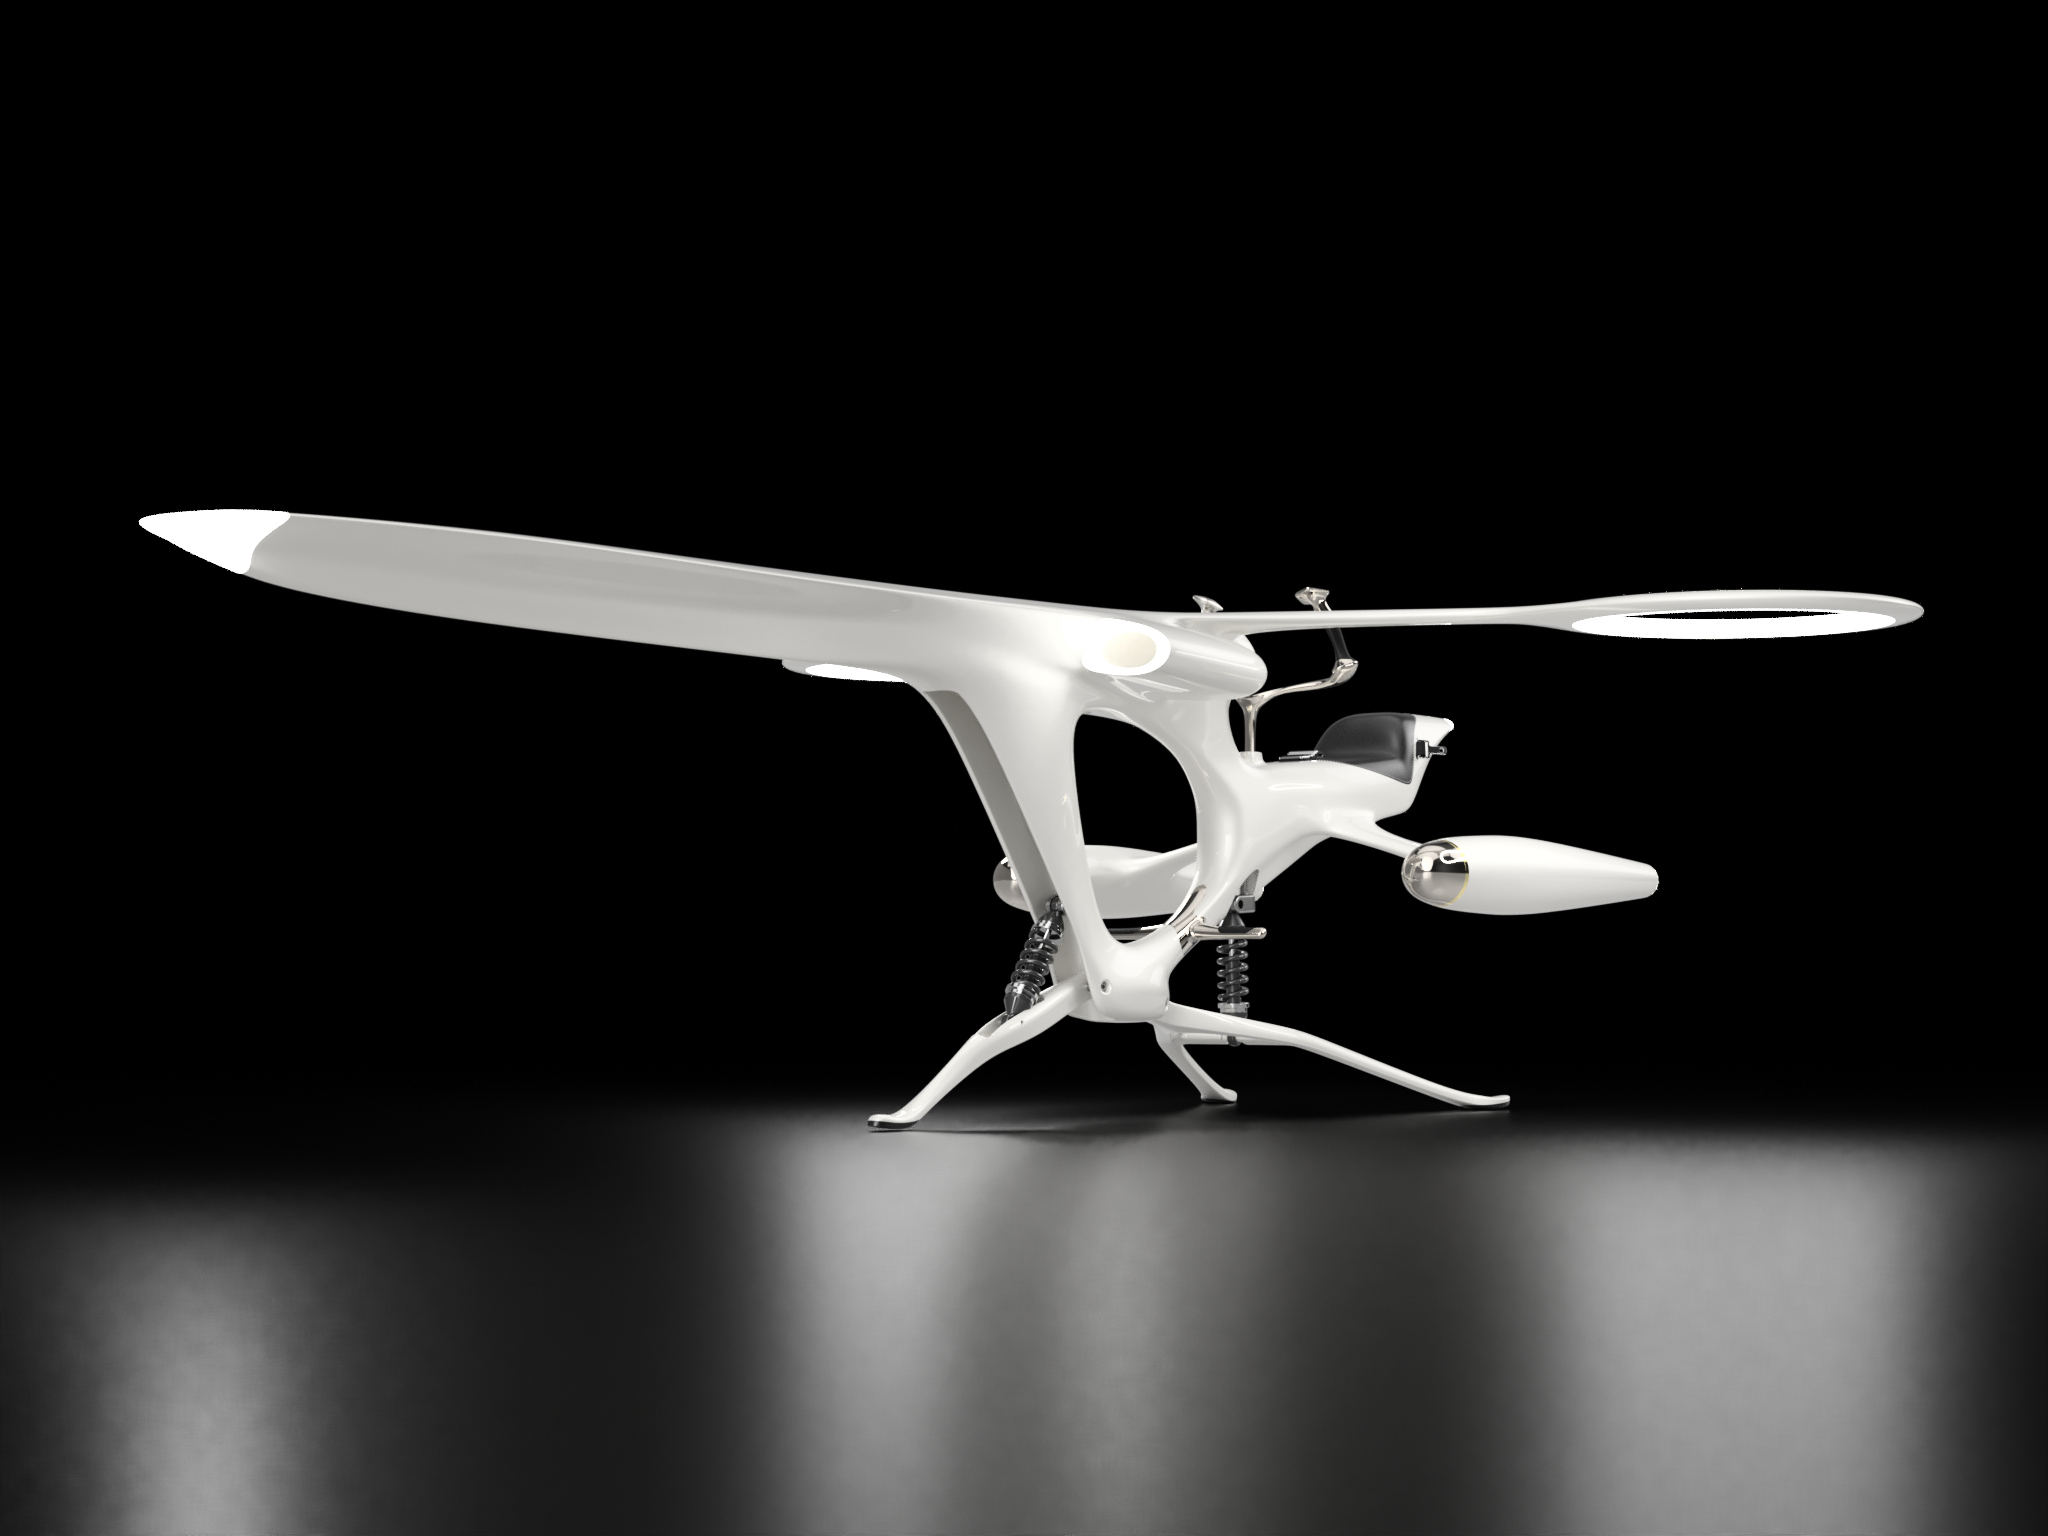 Libellule Drone for Kossi Aguessy